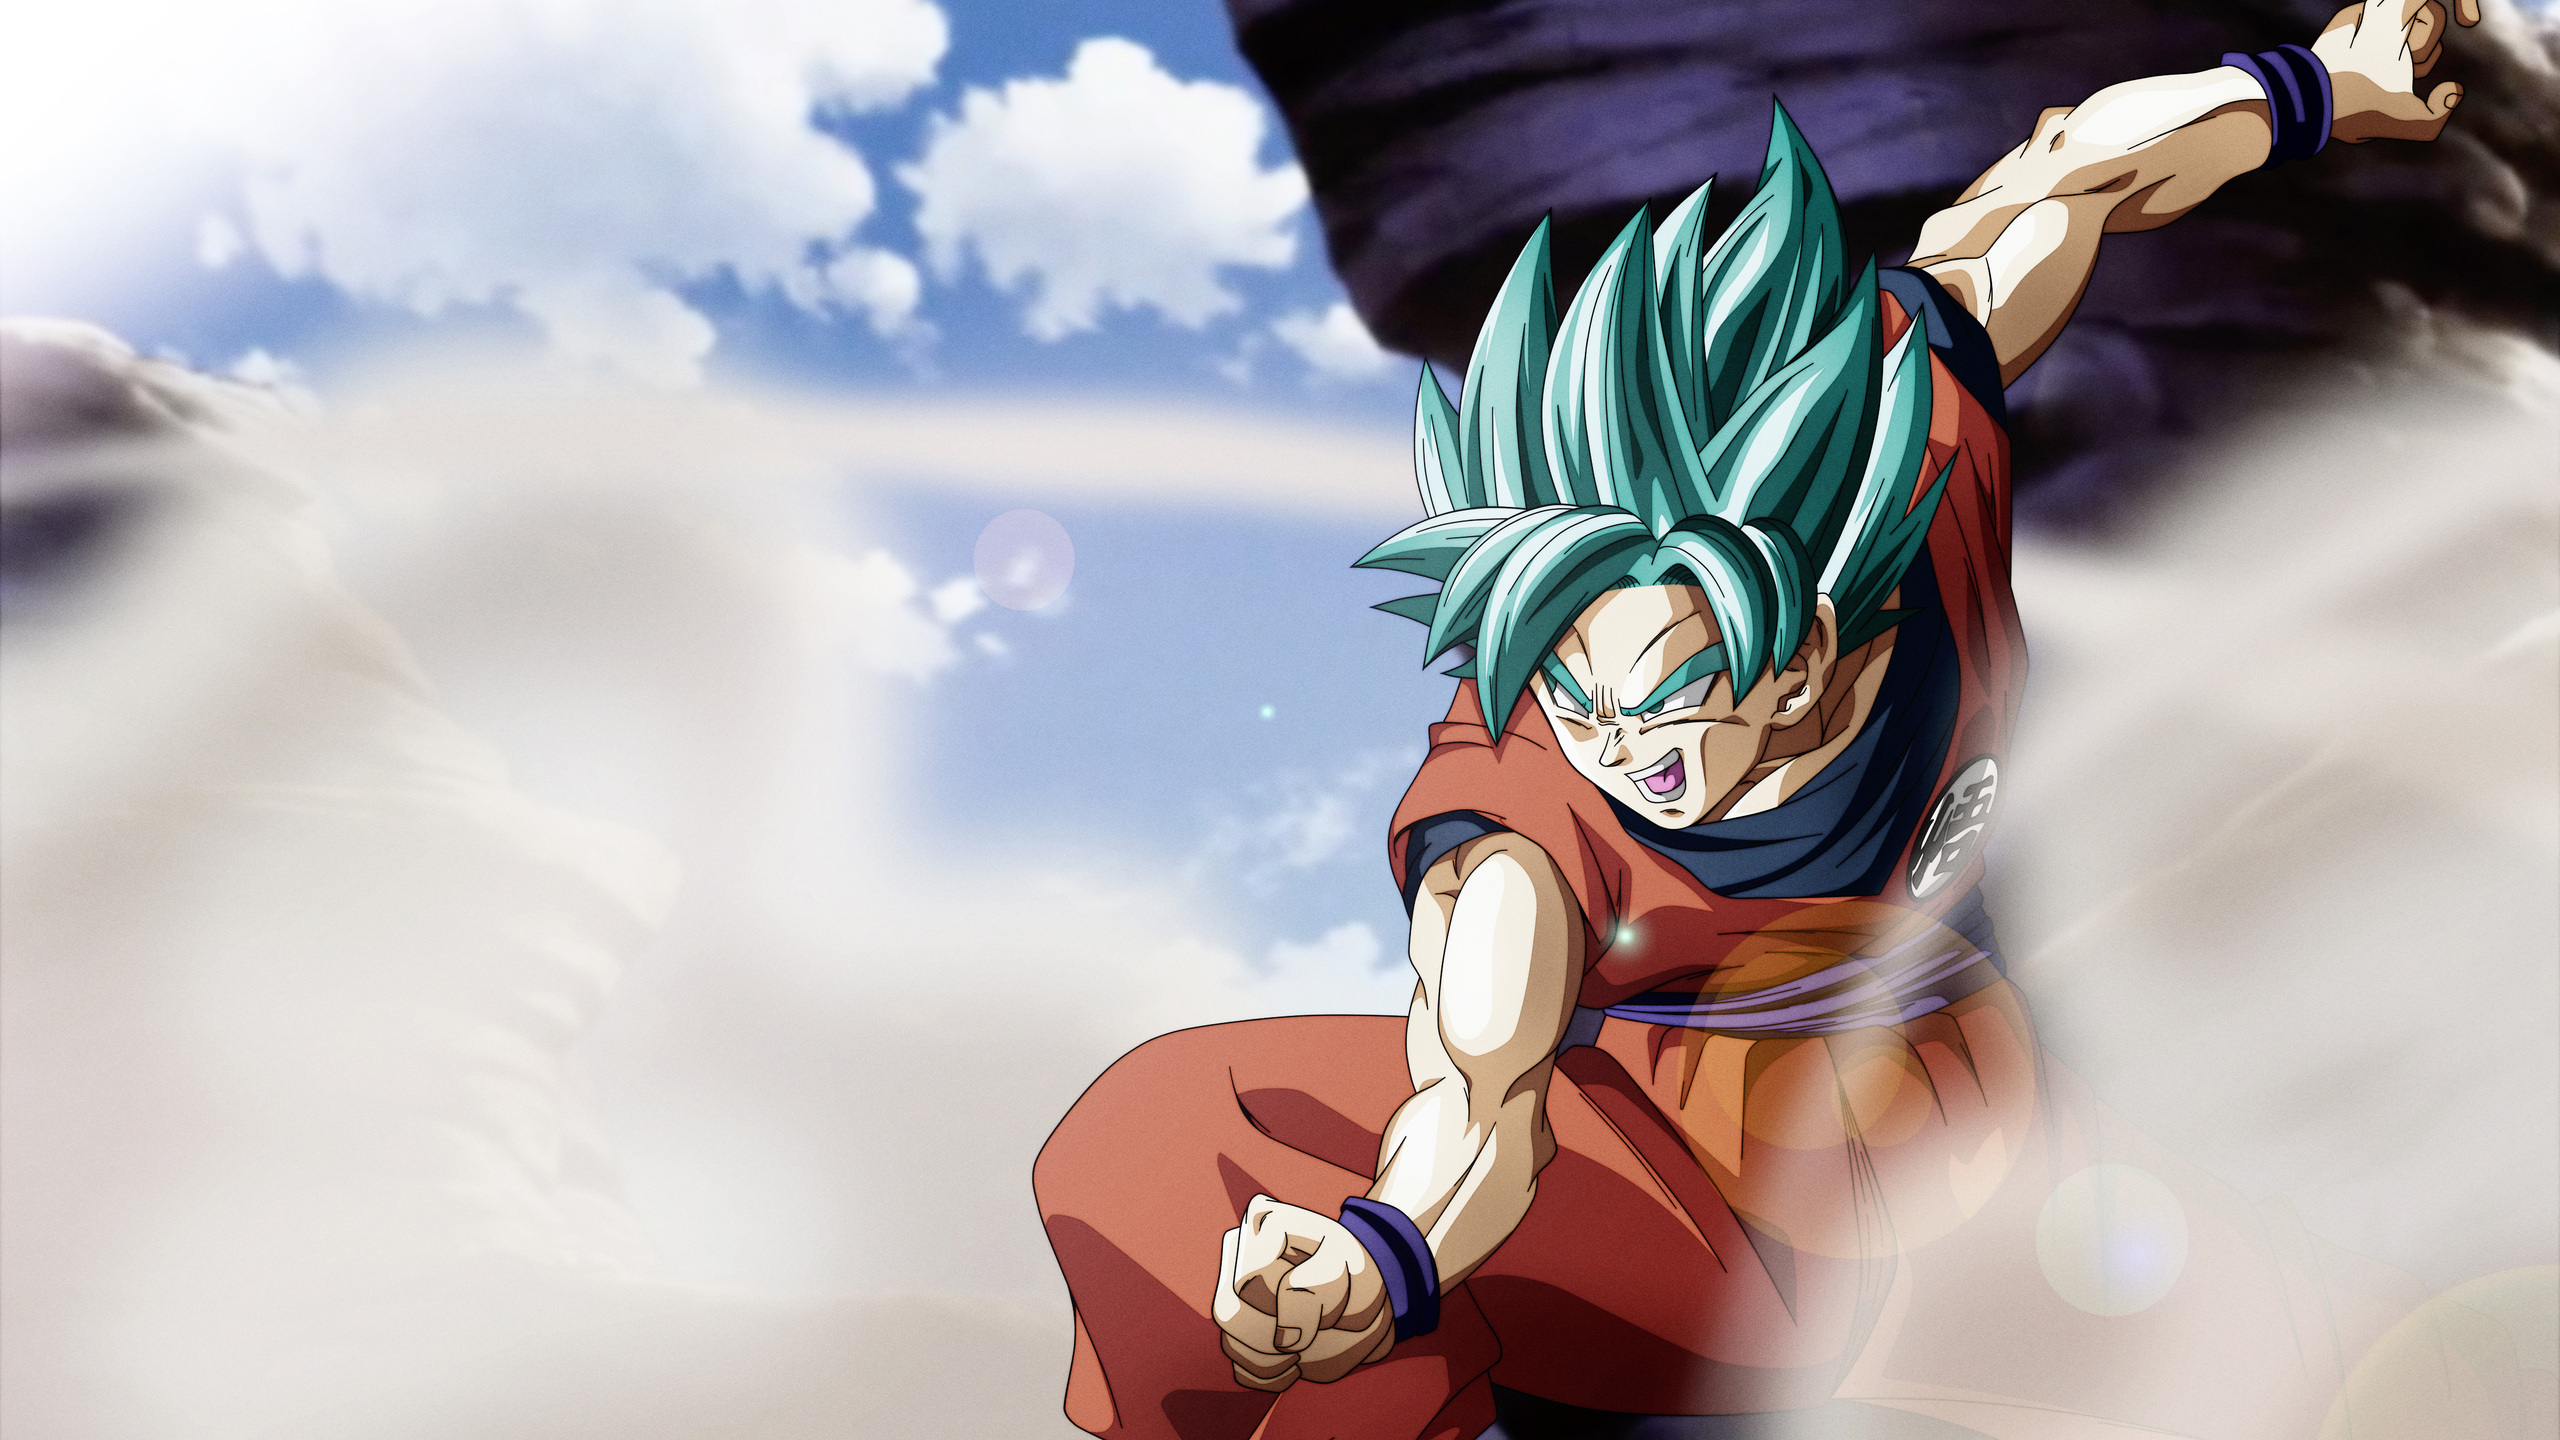 2560x1440 Goku Super Saiyan Blue 1440P Resolution HD 4k ...